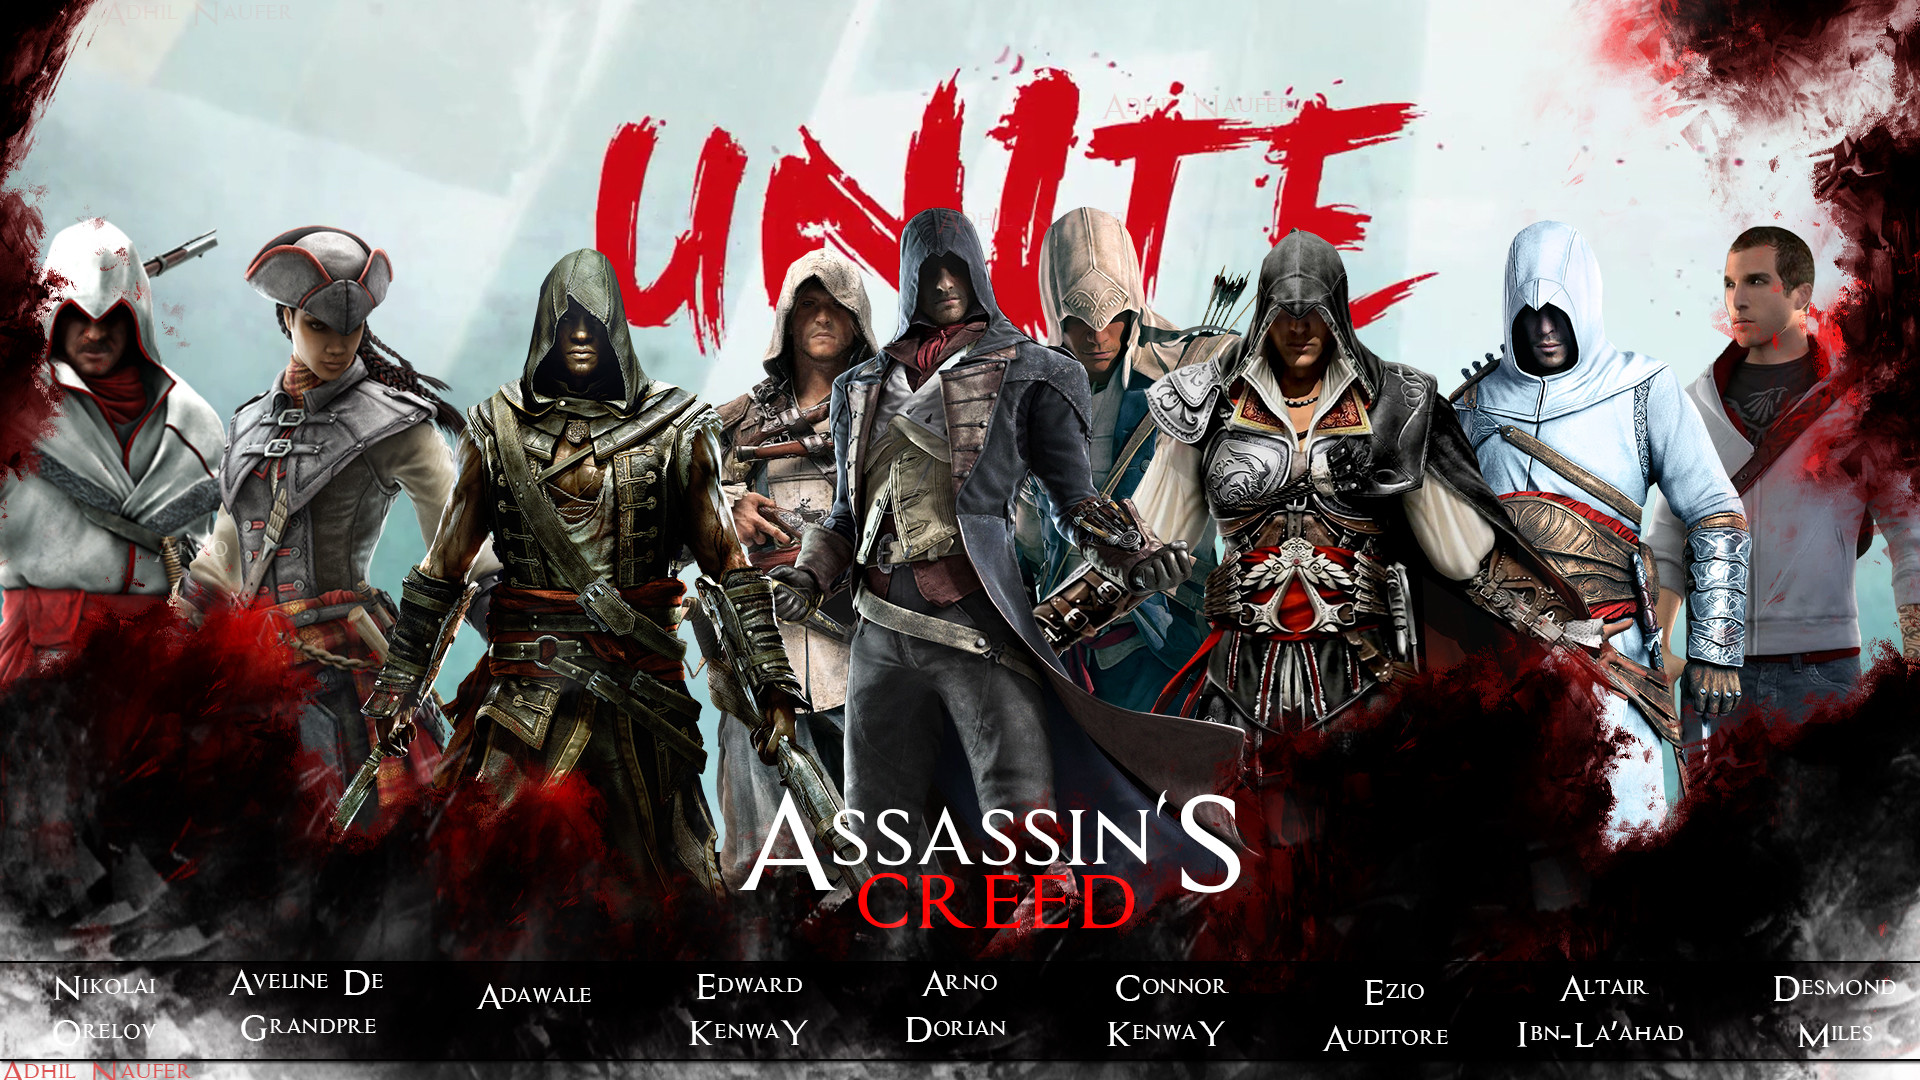 1920x1080 Assassin's Creed Unite by aDeLFrost Assassin's Creed Unite by aDeLFrost